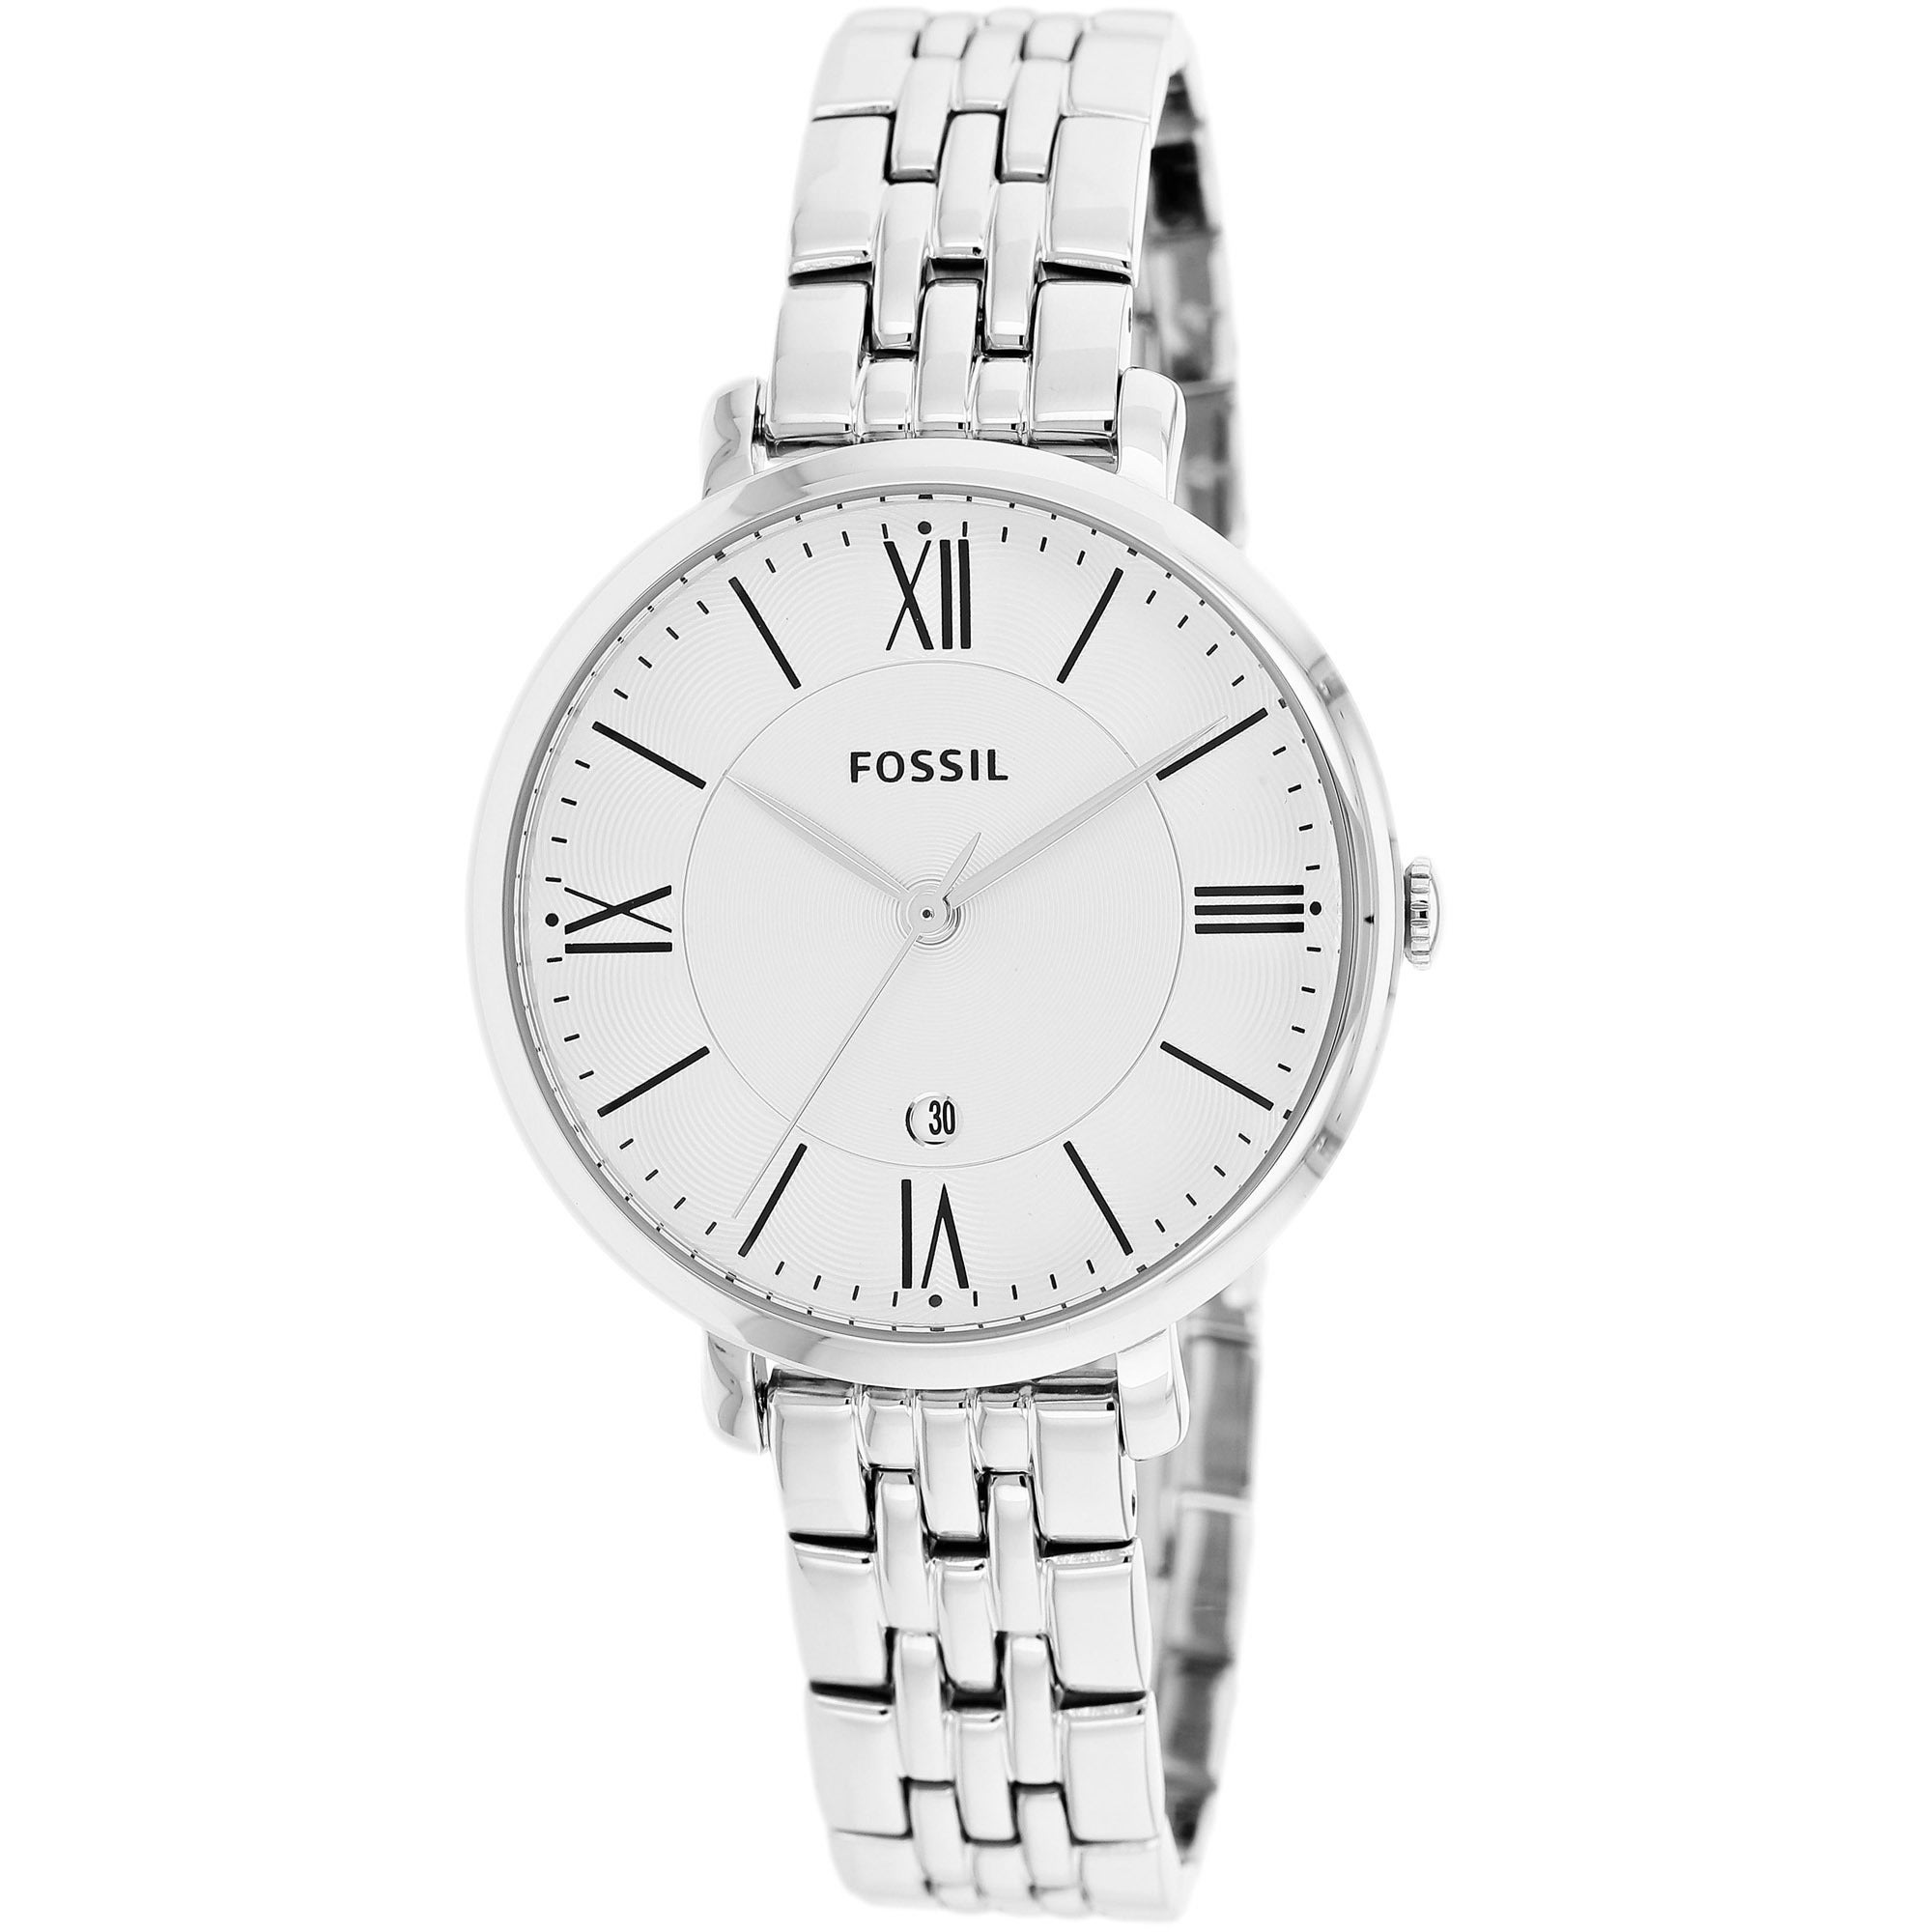 6c3b6bc6a00 Shop Fossil Women s Jacqueline Stainless Steel Watch - Free Shipping ...